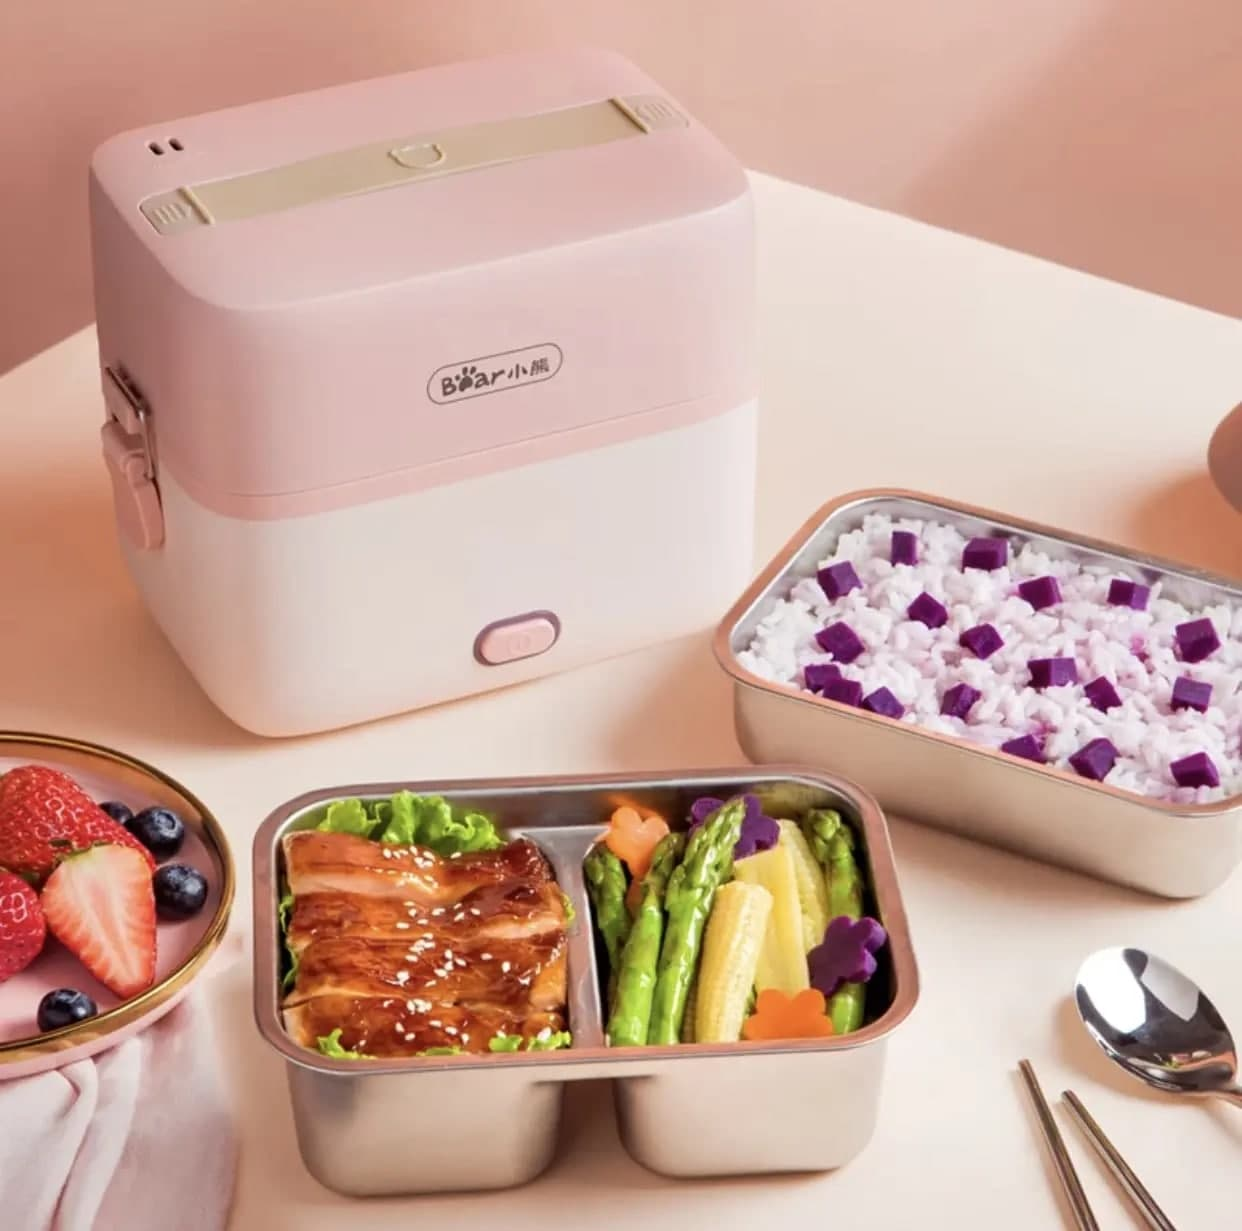 Pink items: electronic lunch box